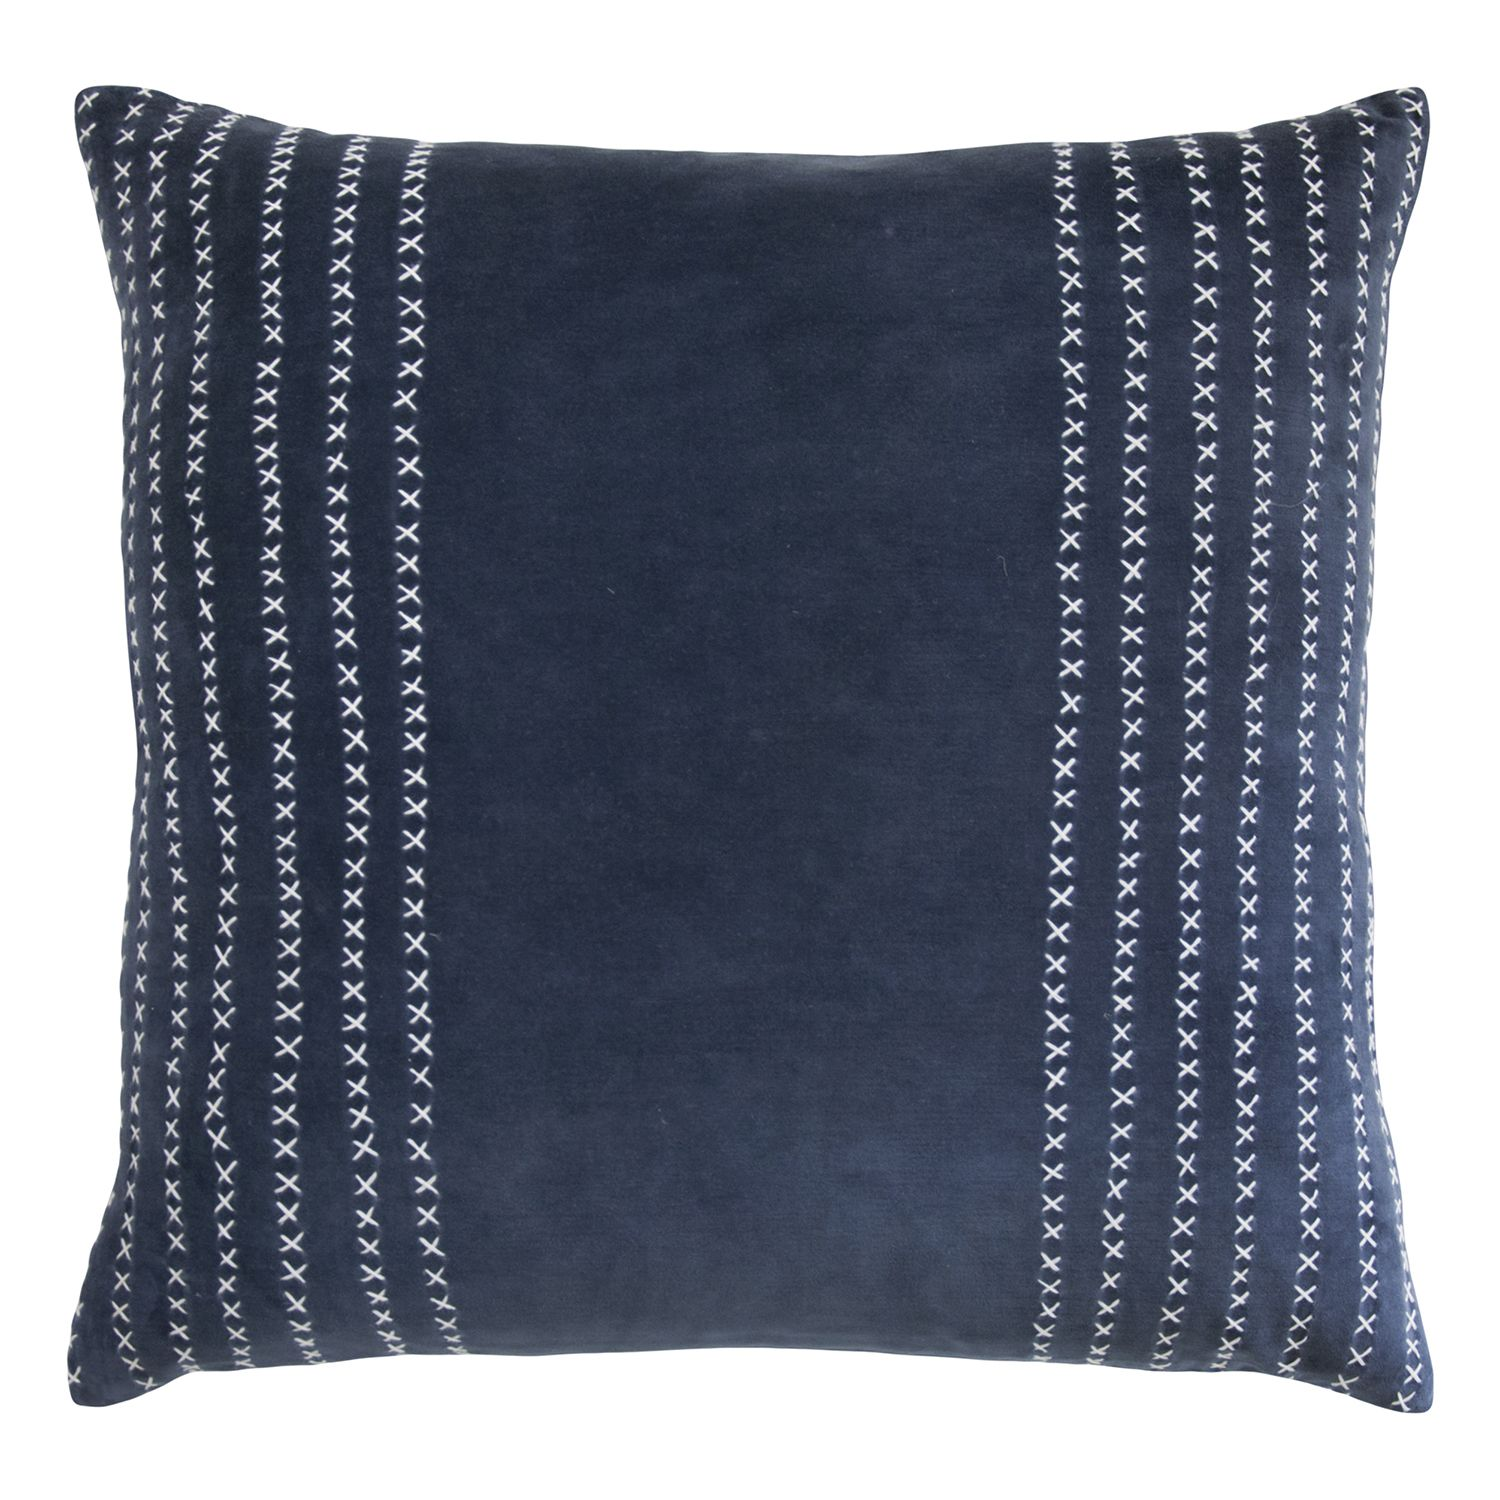 Kevin OBrien Studio Stripe Stitched Cotton Velvet Decorative Pillow